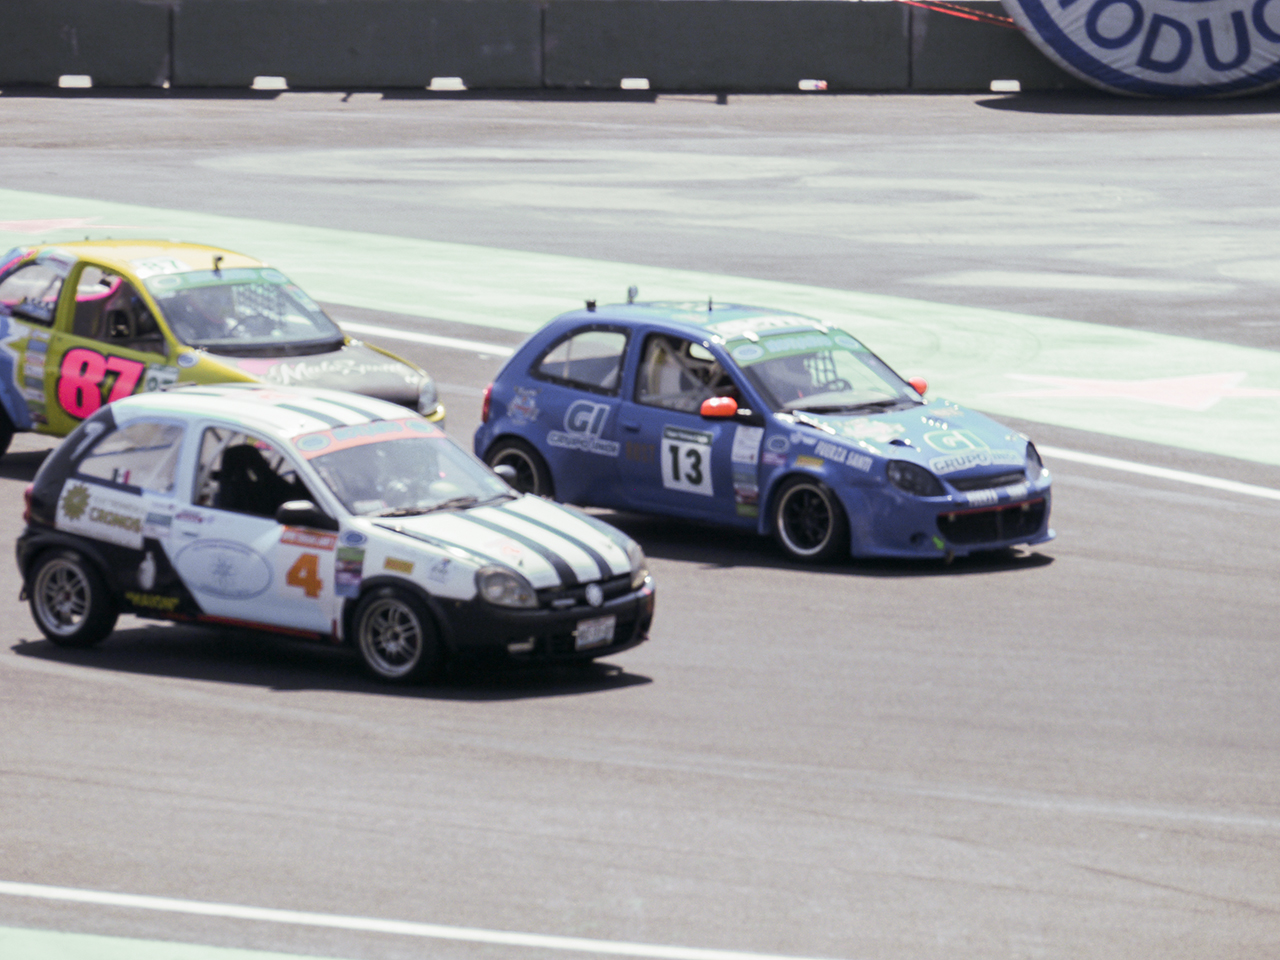 De Rivas heads into the stadium section at Circuito Hermanos Rodriguez with the inside line.